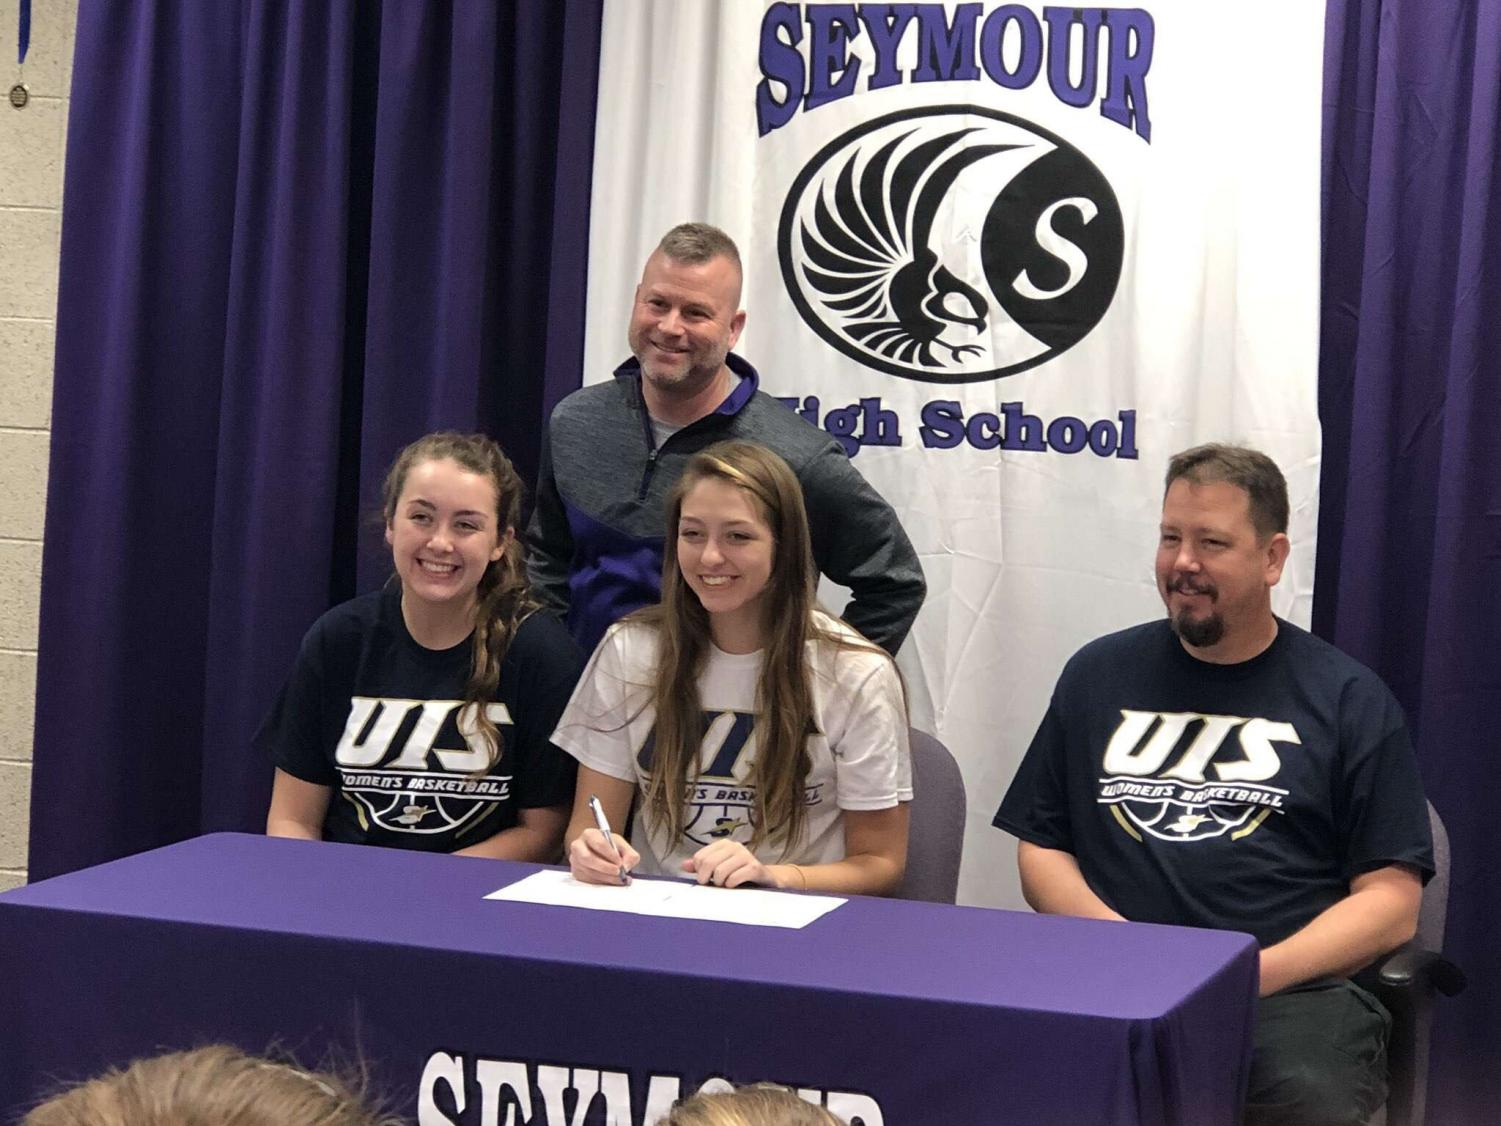 Makenna Fee (middle) with her sister (left), father (right), and Seymour coach Jason Longmeier(top)